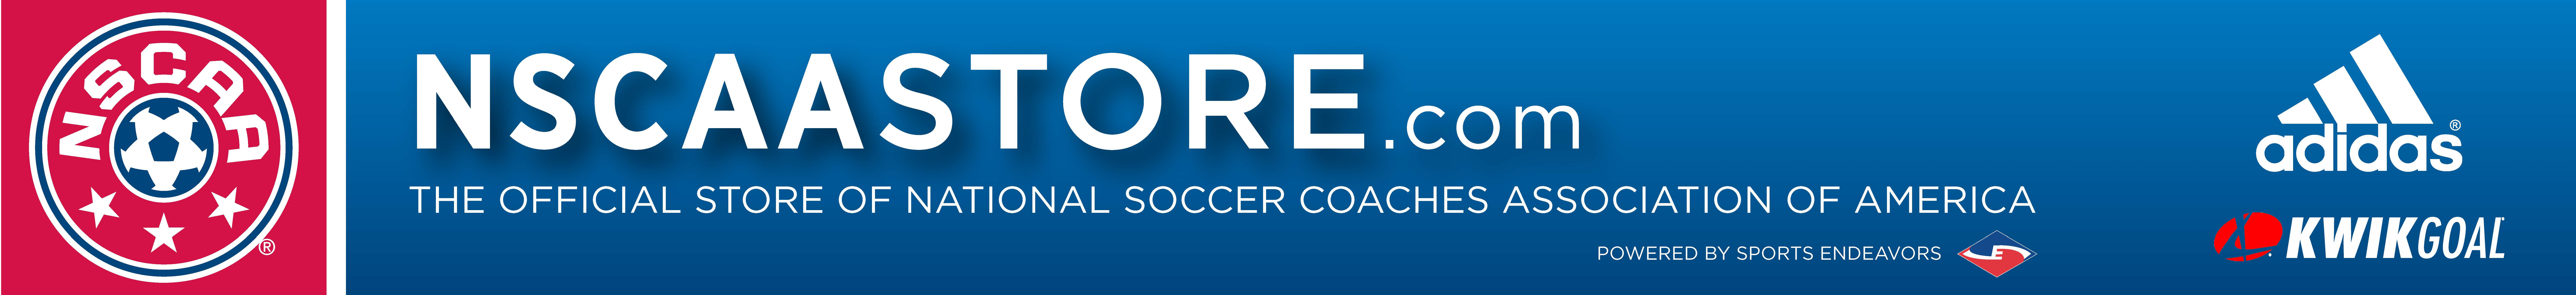 NSCAAstore.com - the official sotre of National Soccer Coaches Association of America